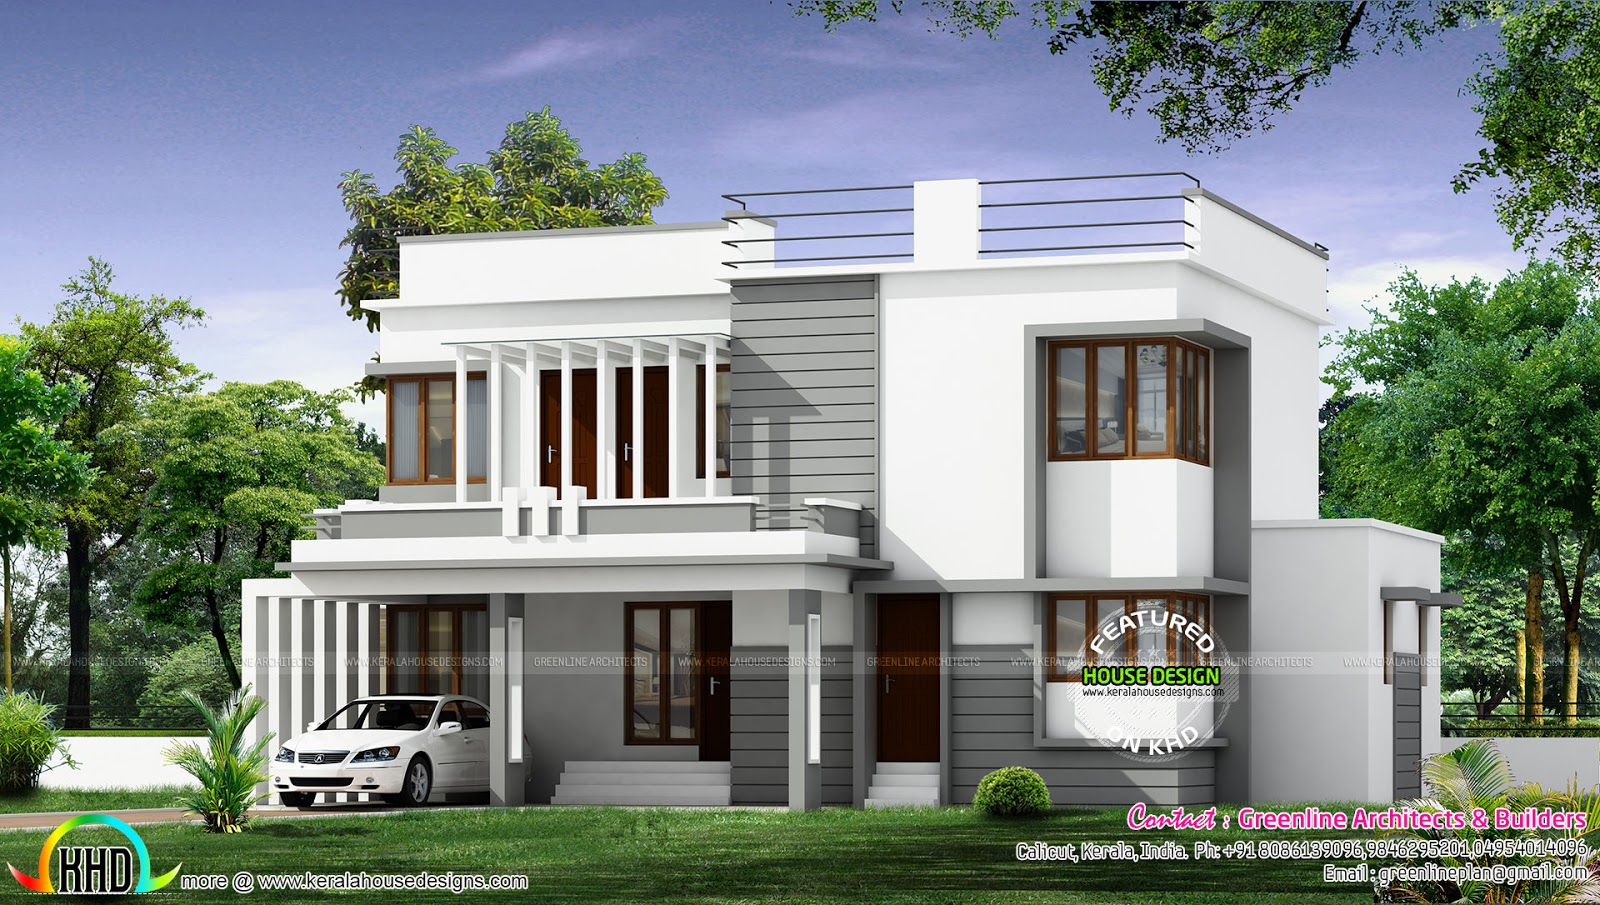 New modern house architecture kerala home design and for Beautiful homes photo gallery